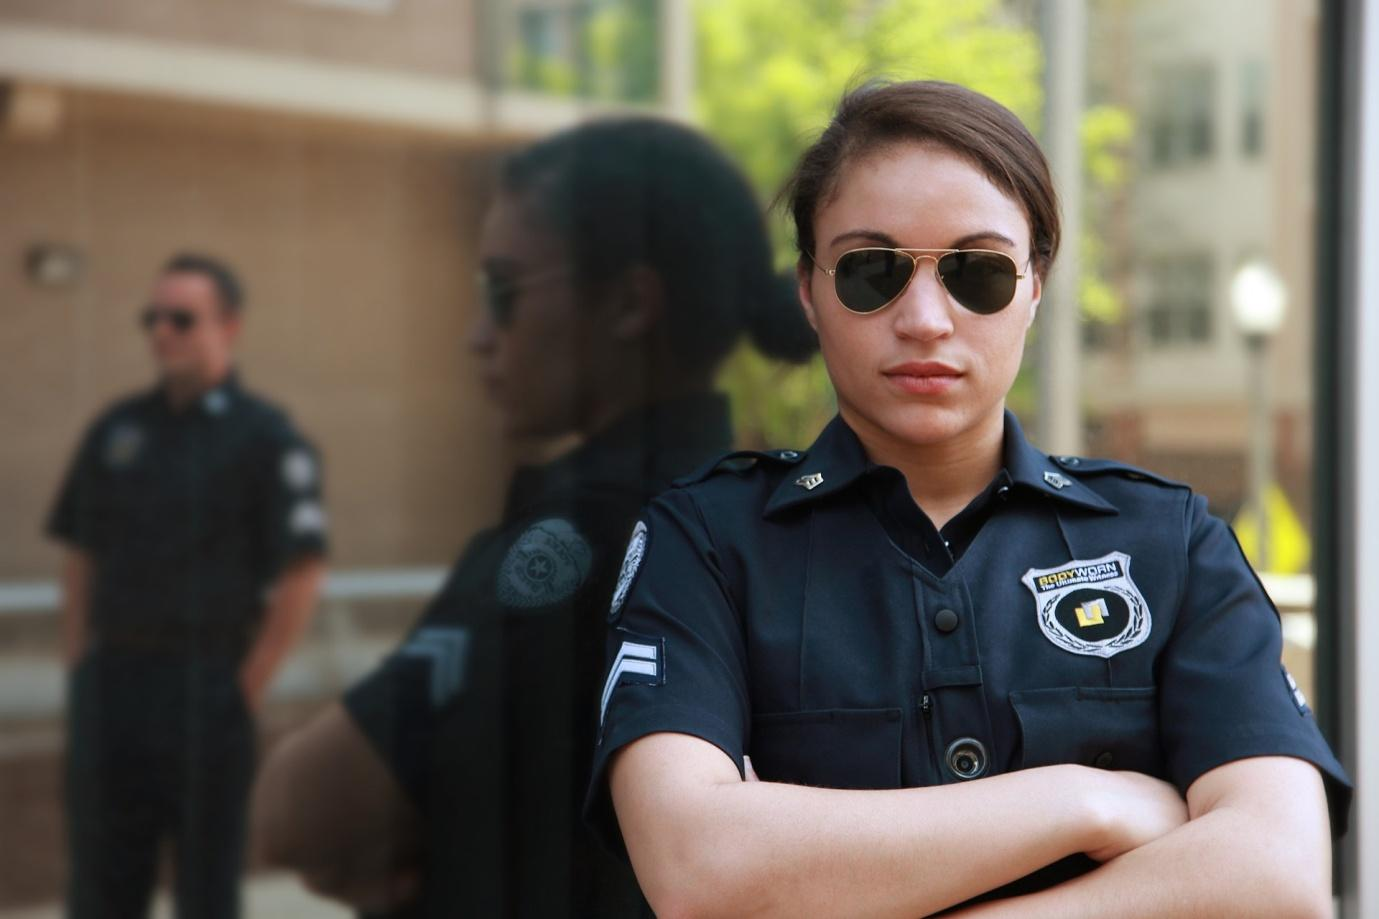 Security Officer Calgary: Difference Between Security Guards And Security Officers